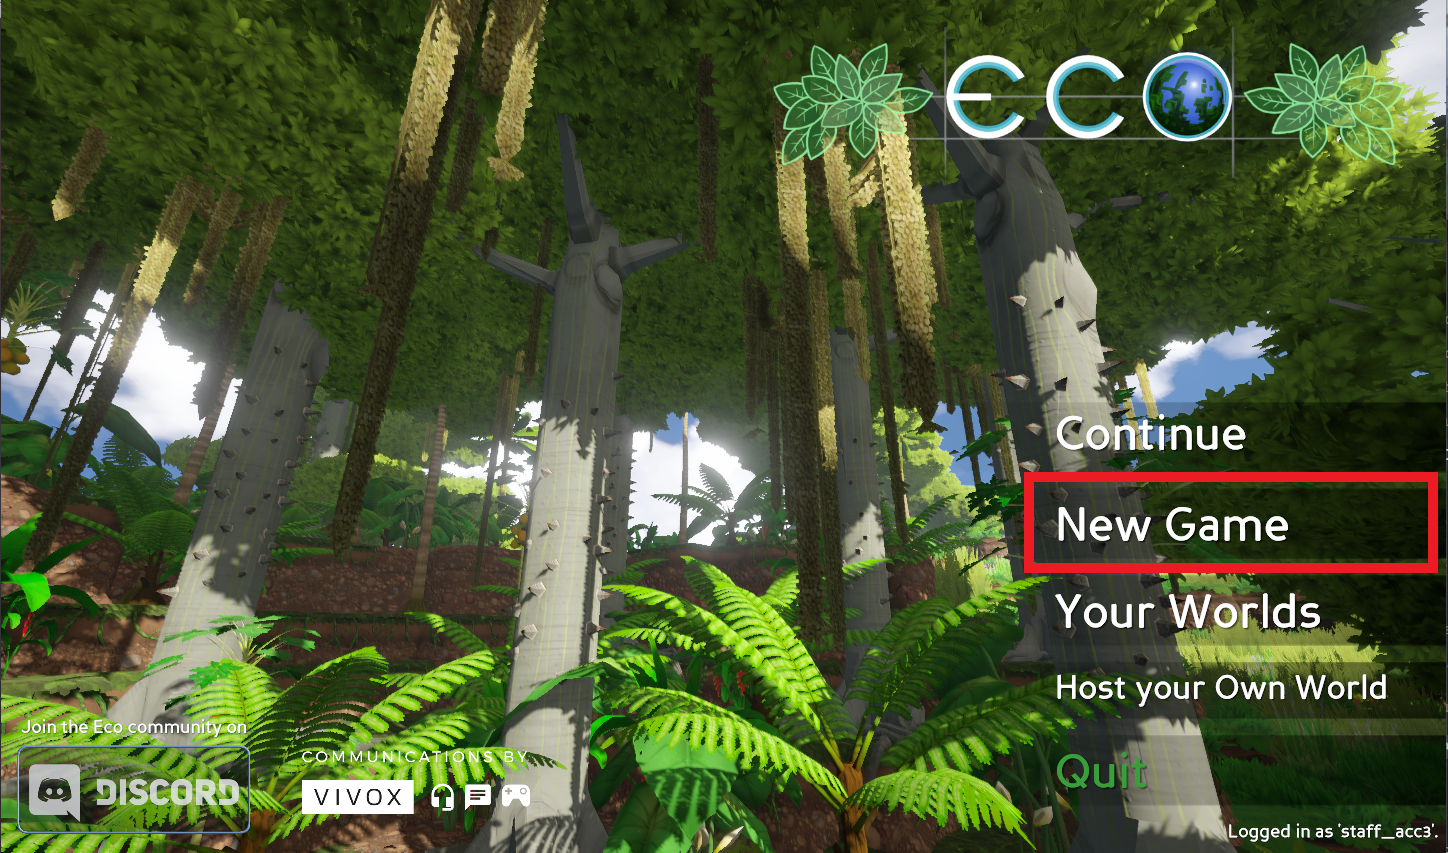 A view of the main title screen for the game Eco, with the New Game option highlighted